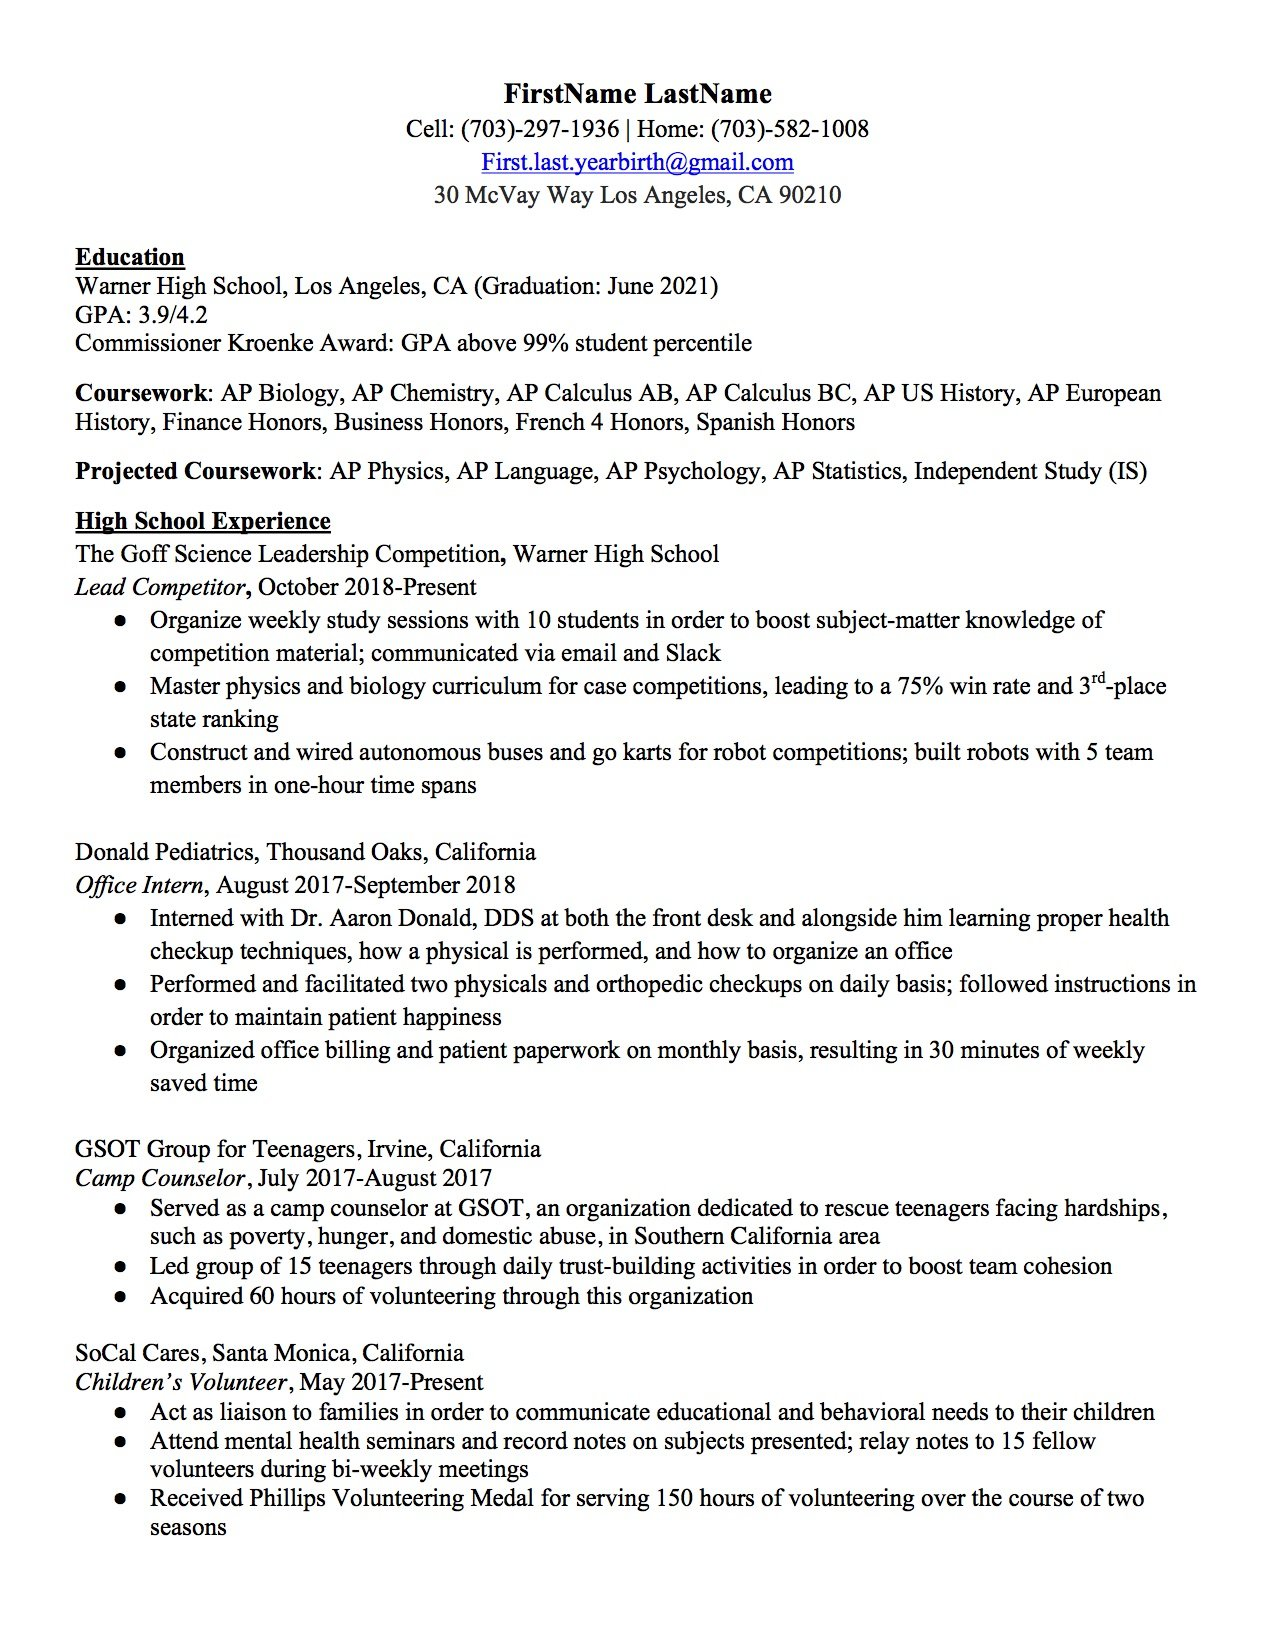 High School Resume: How to Write the Best One (Templates ...